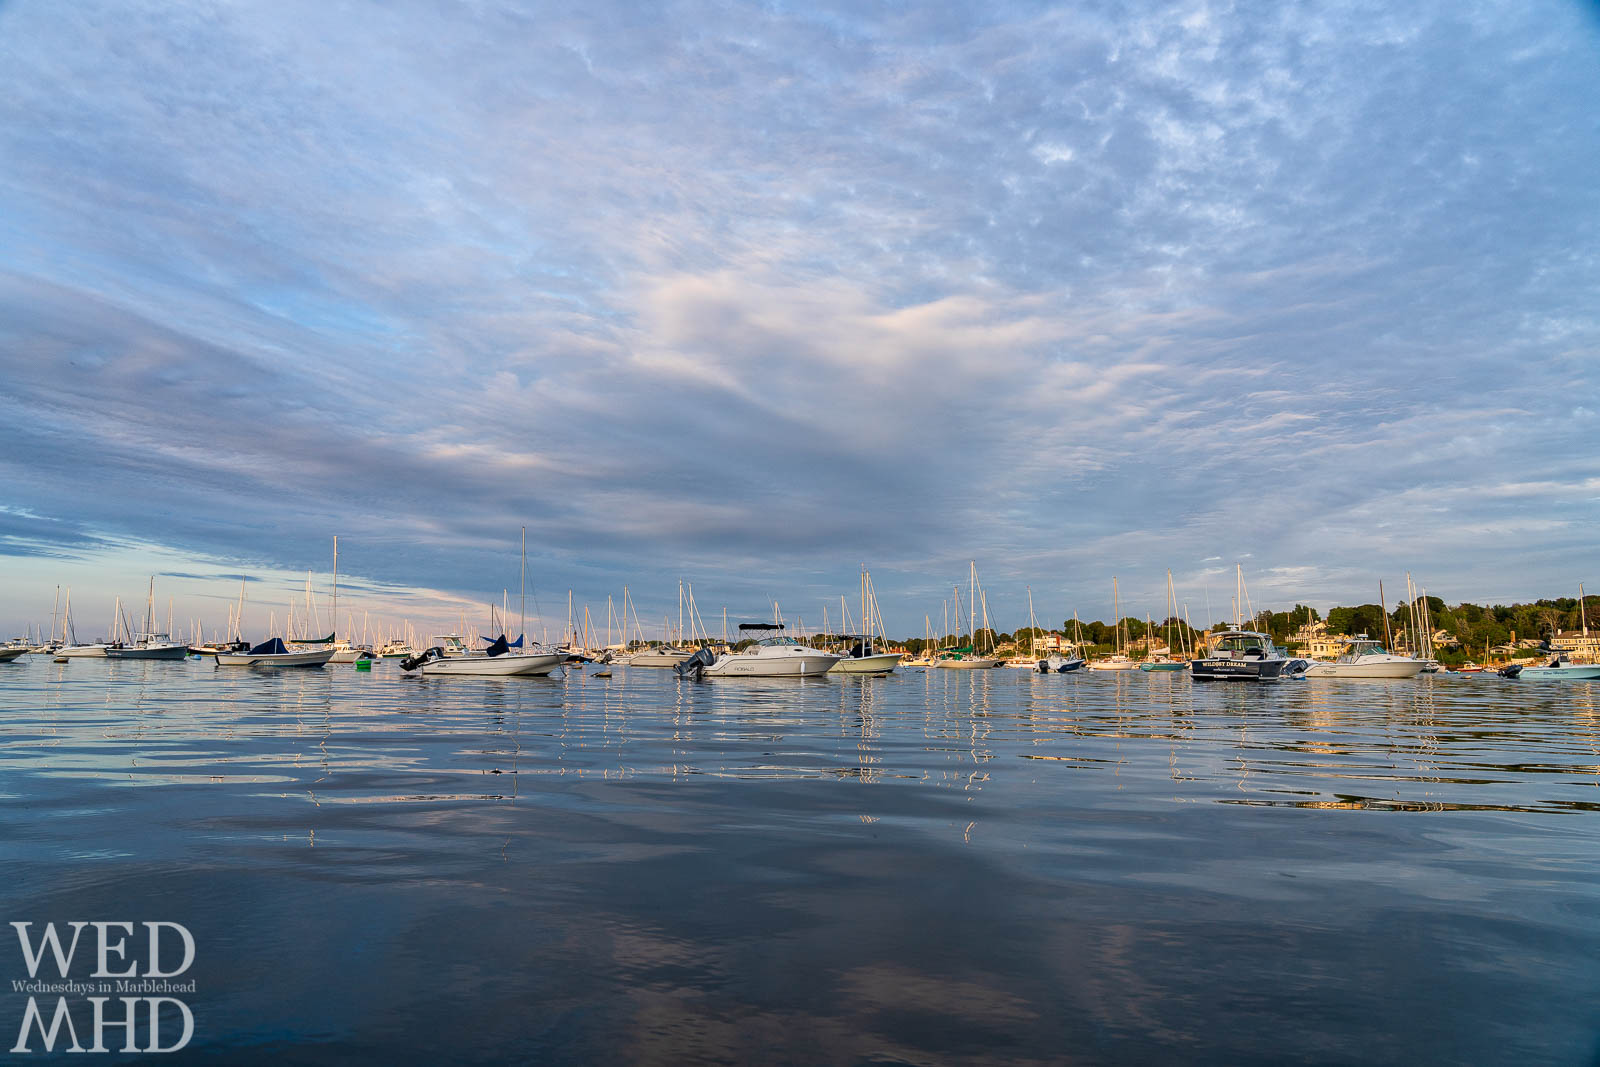 The still water of Marblehead Harbor creates perfect reflections of boats and their masts under a partly cloudy sky just before sunset on a September evening